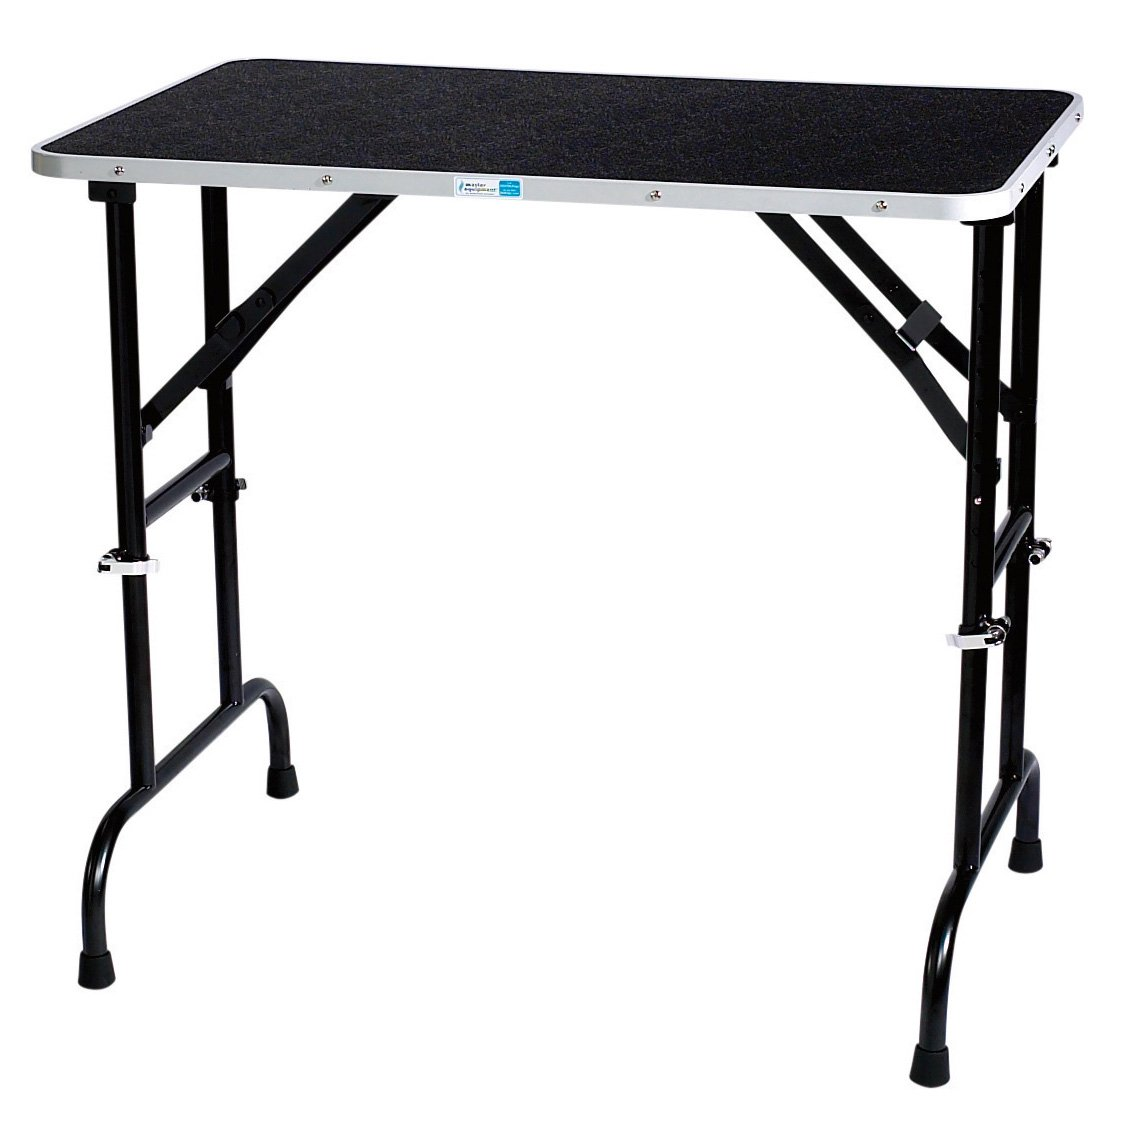 Master Equipment Adjustable Height Grooming Table, 42 by 24-Inch